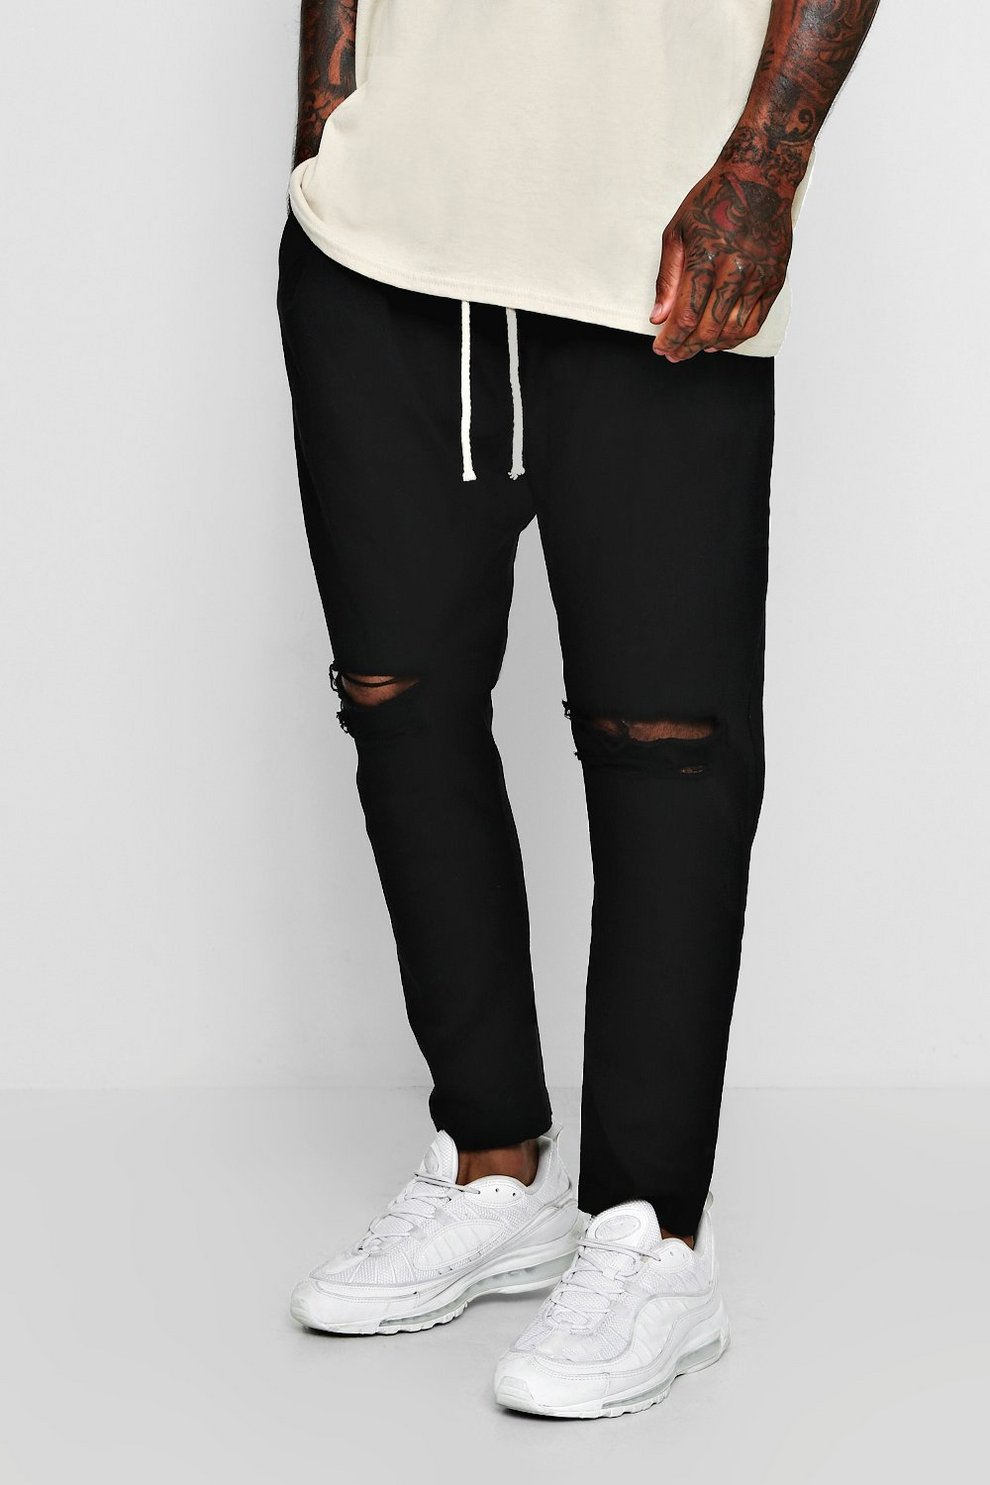 Tapered Fit Drawstring Chino With Ripped Knee Boohooman Premium Shop Black Original